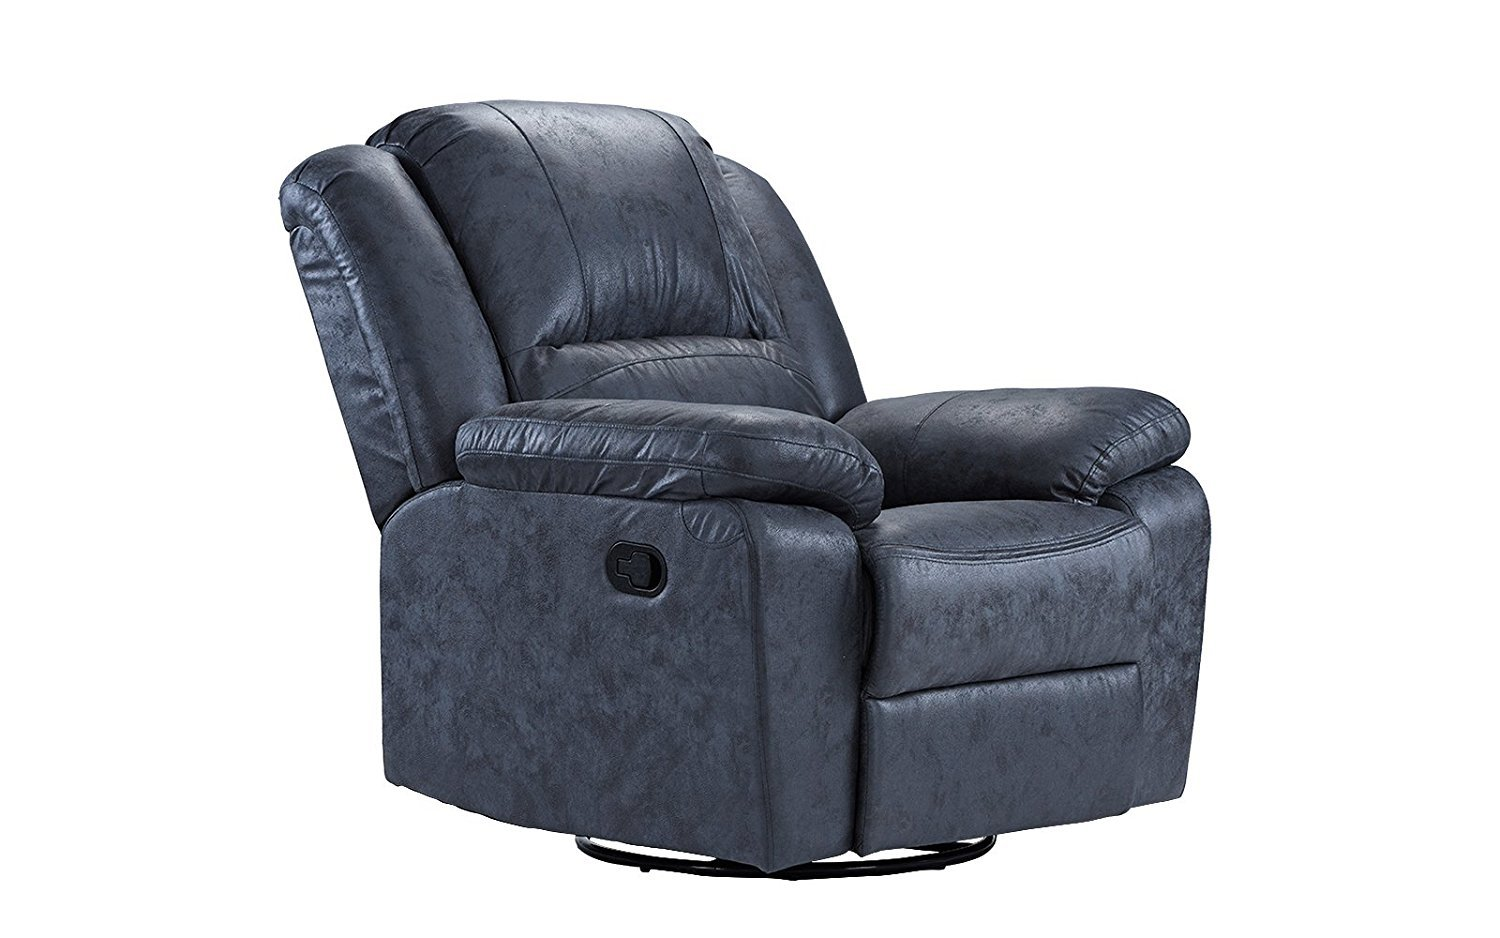 Oversize Ultra Comfortable Air Leather Fabric Rocker And